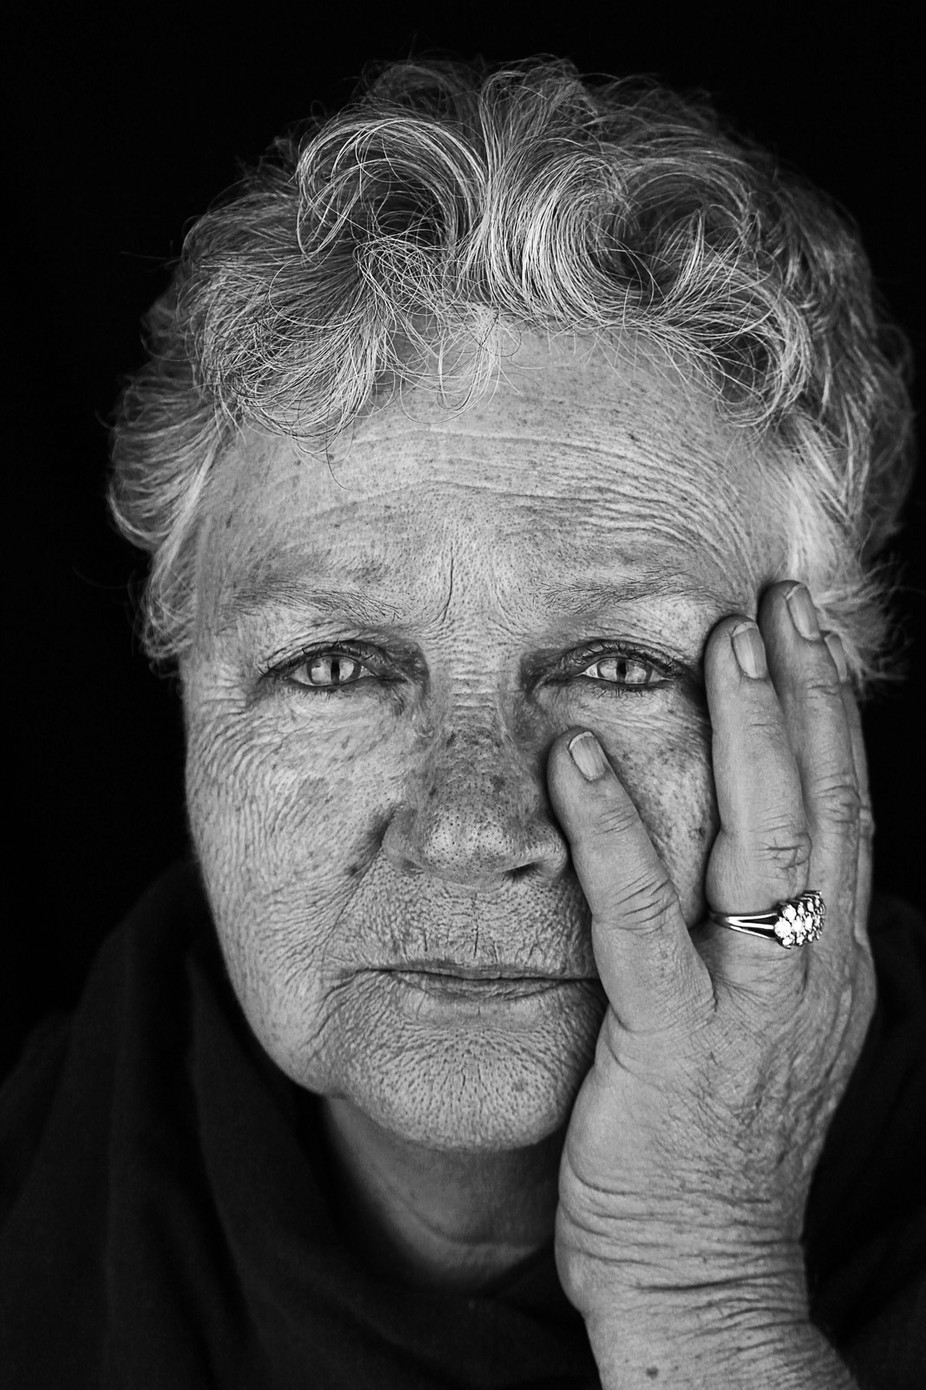 mother, grandmother, great grandmother by zebmay - Dark Portraits Photo Contest